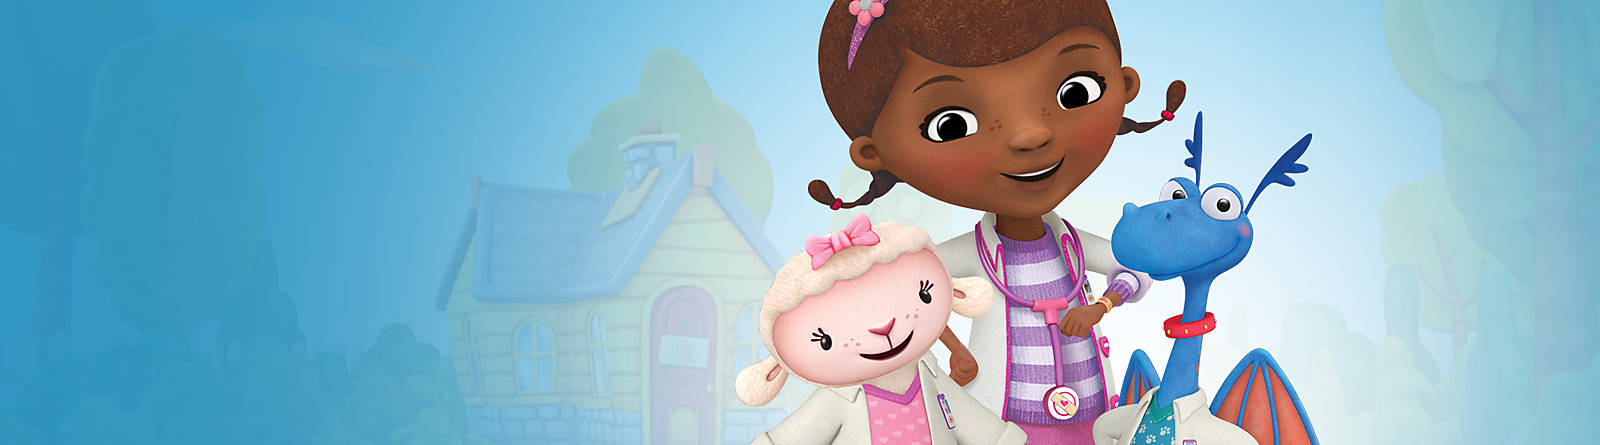 Doc McStuffins Discover our exciting range of Doc McStuffins merchandise, including toys, playsets and costumes